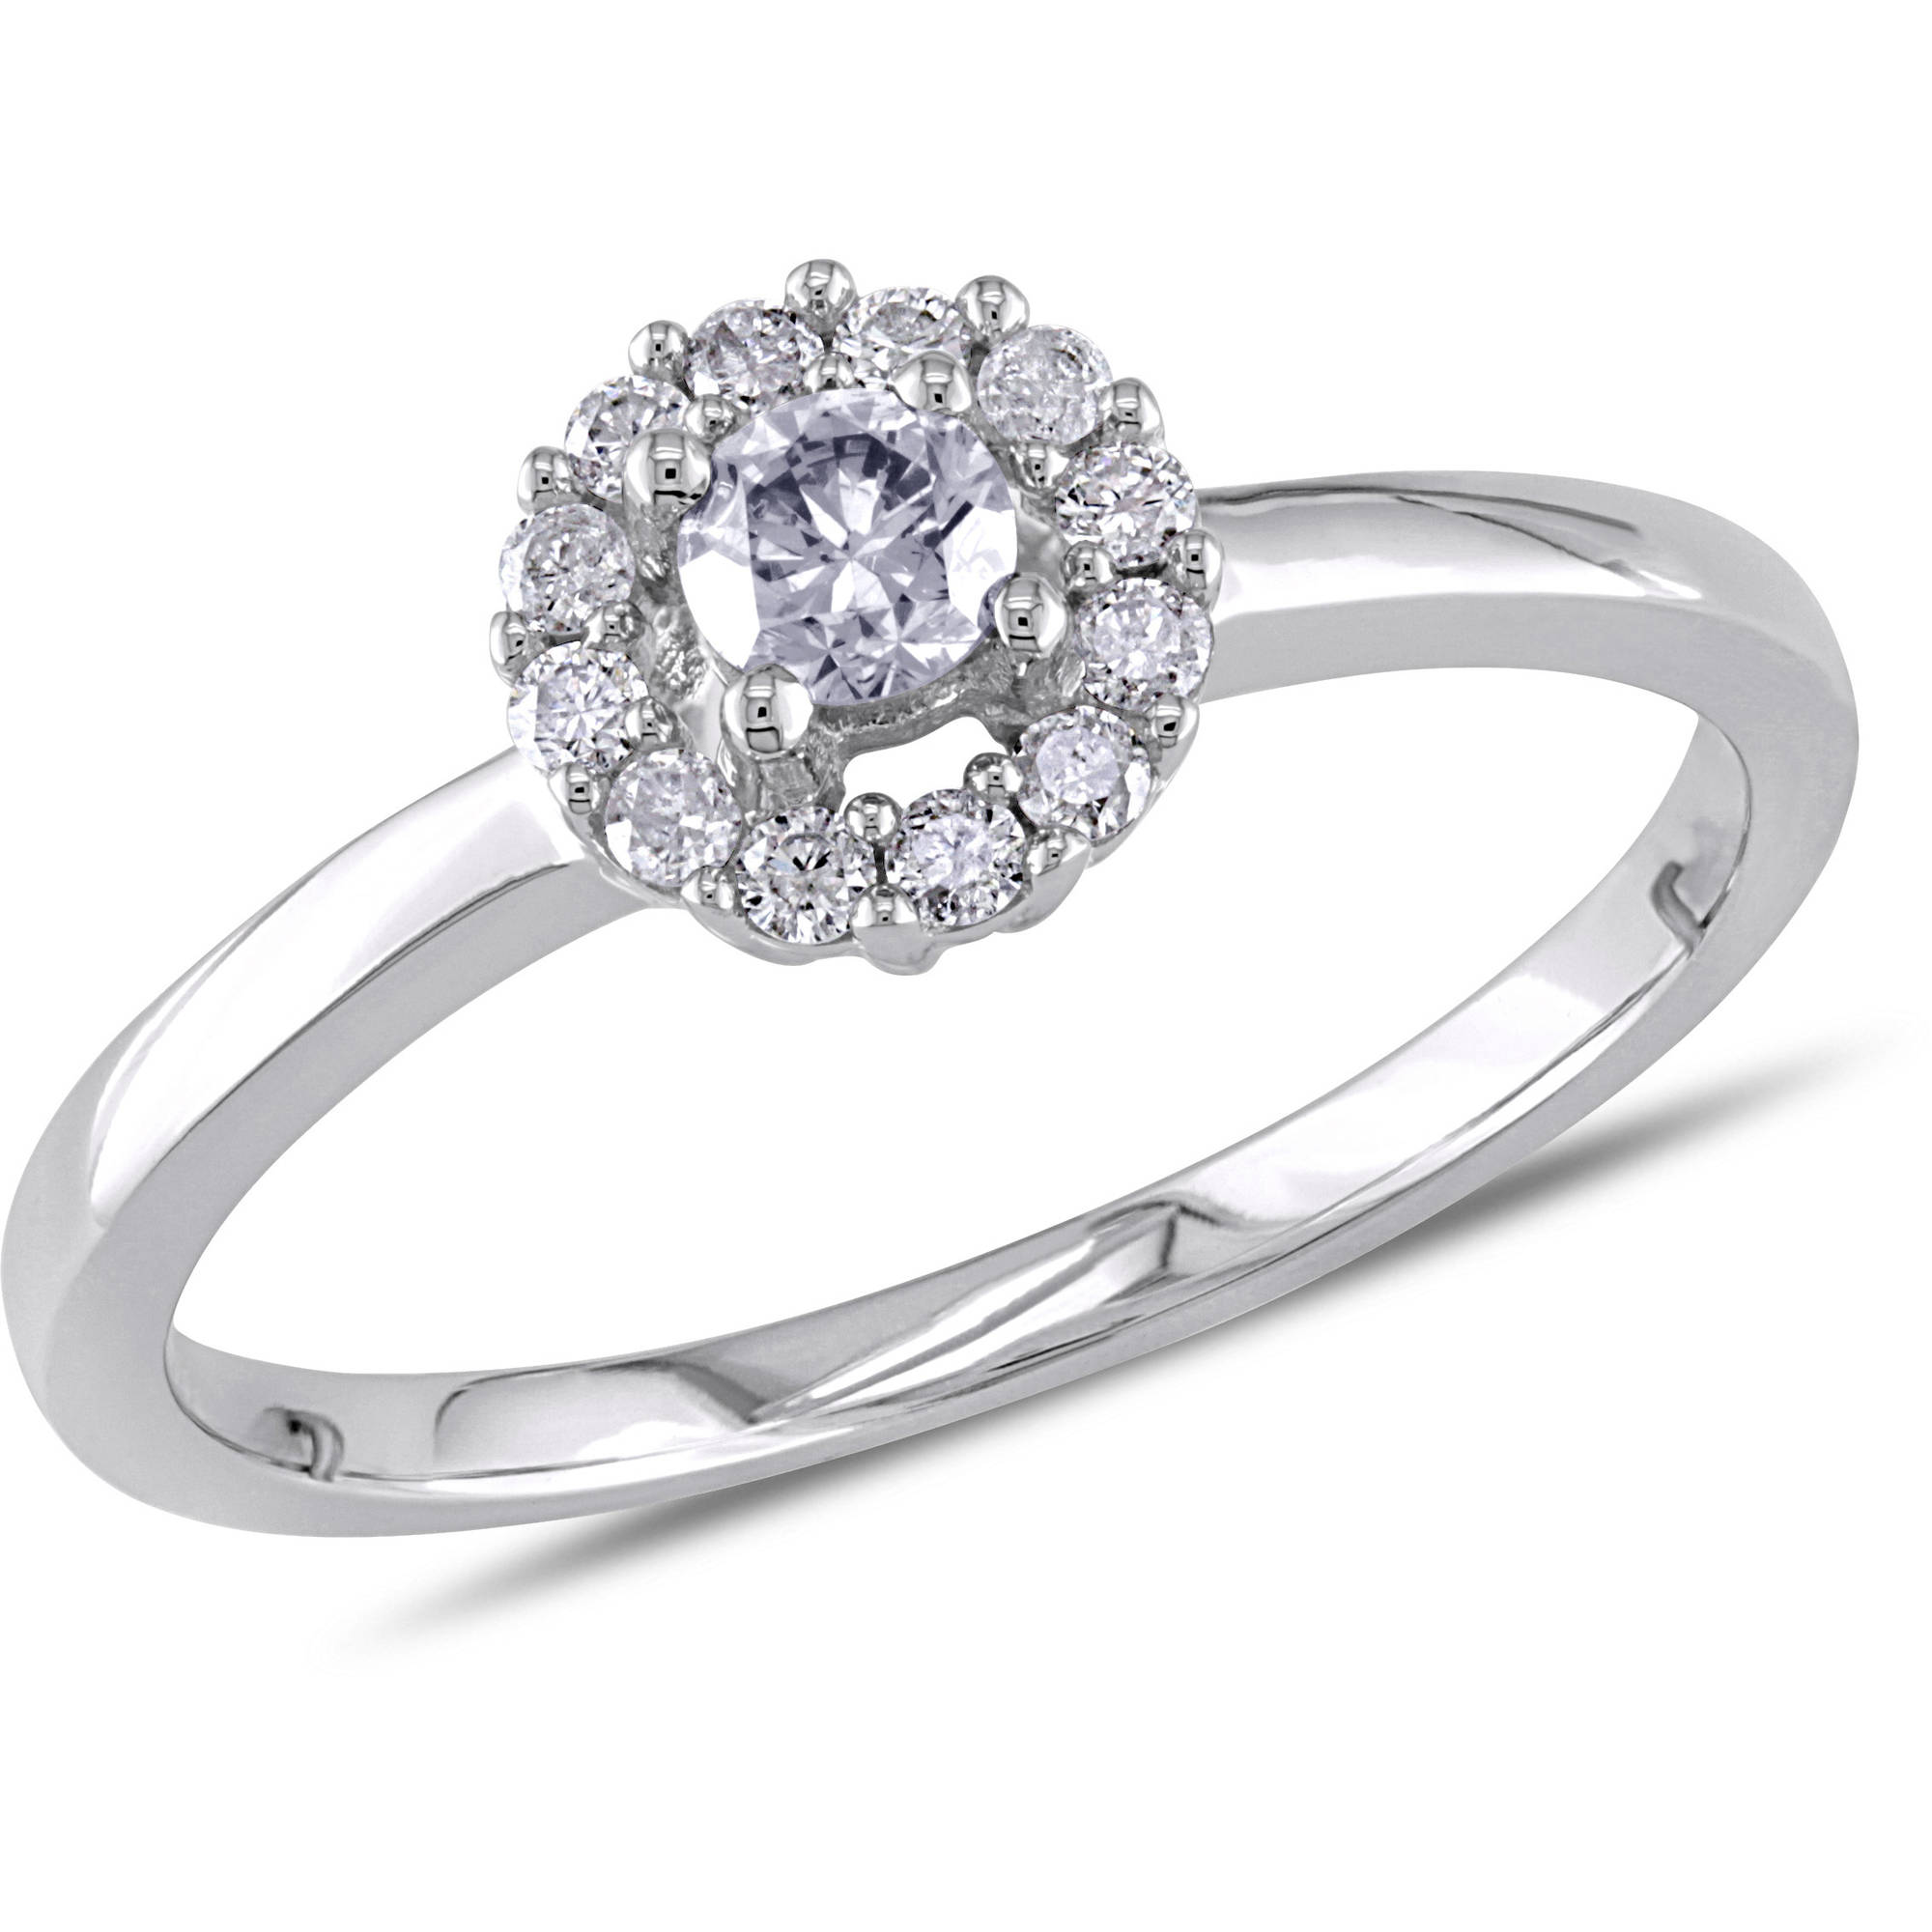 engagement group diamonds band nei carat wedding single stone products rings prong silver